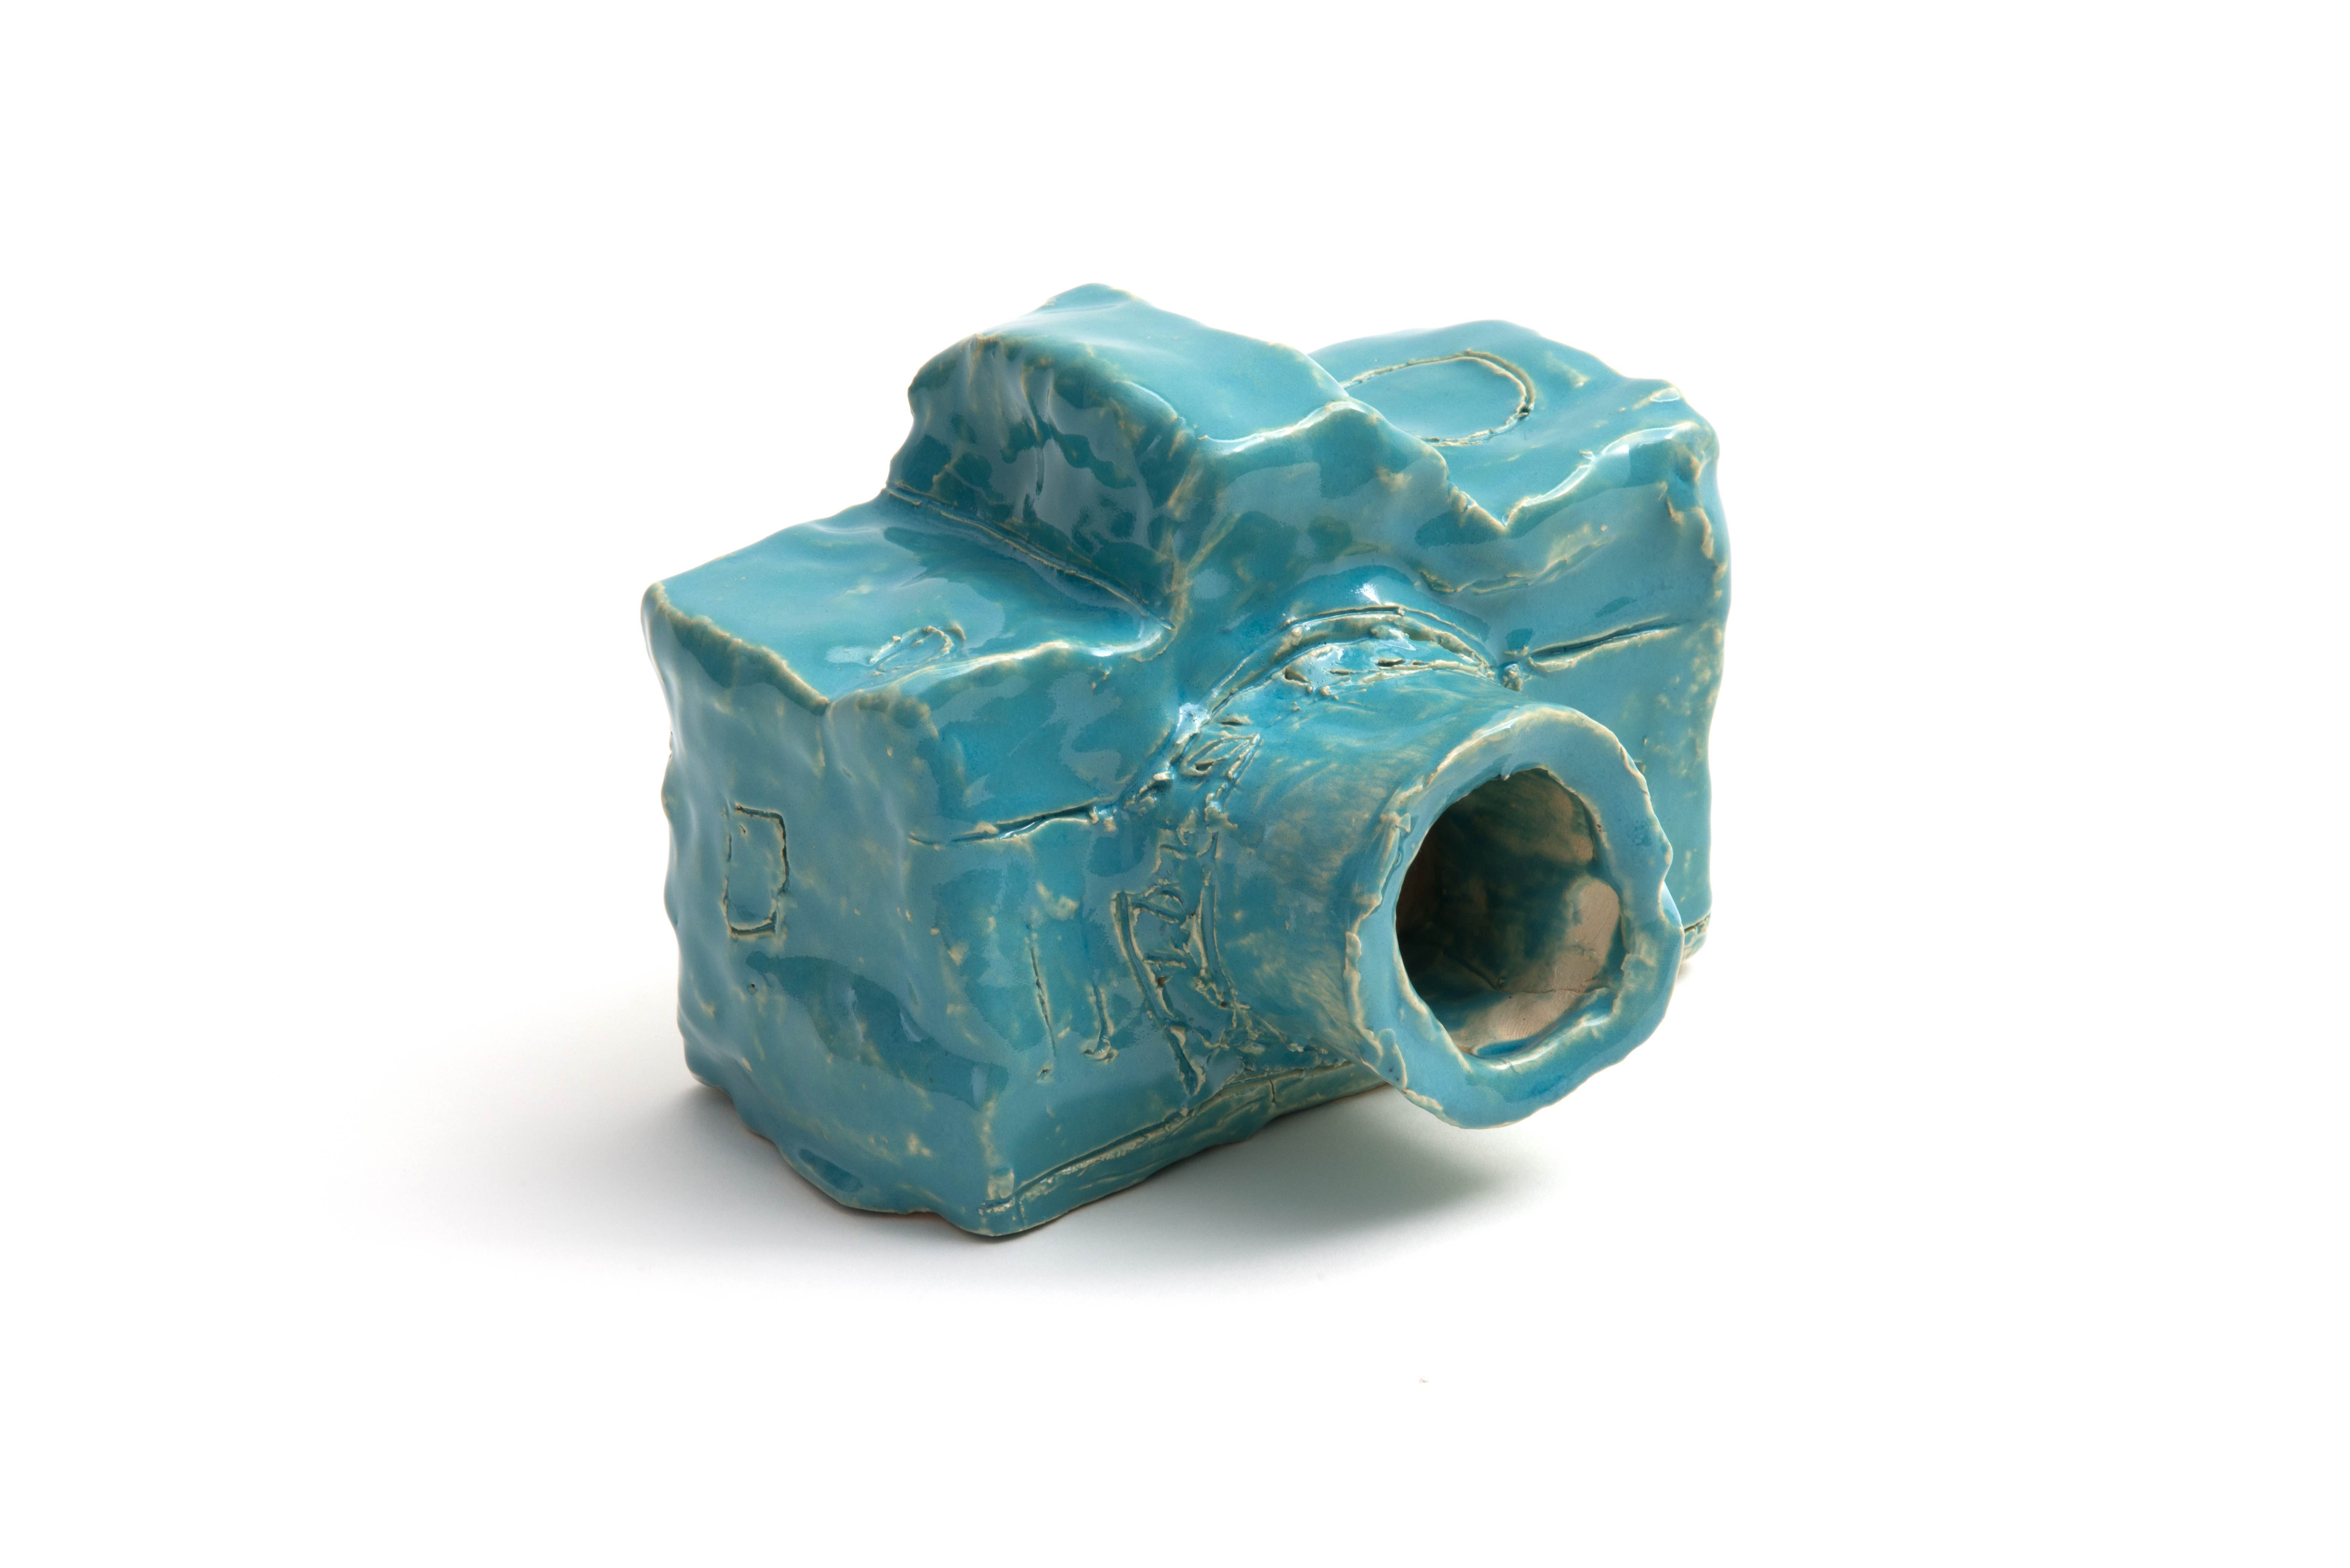 Alan Constable, Untitled (AC0005 / ACC17-0006), 2017. Glaze, earthenware, 4.25 x 6 x 4.75 inches. Courtesy DUTTON and Andrew Edlin Gallery